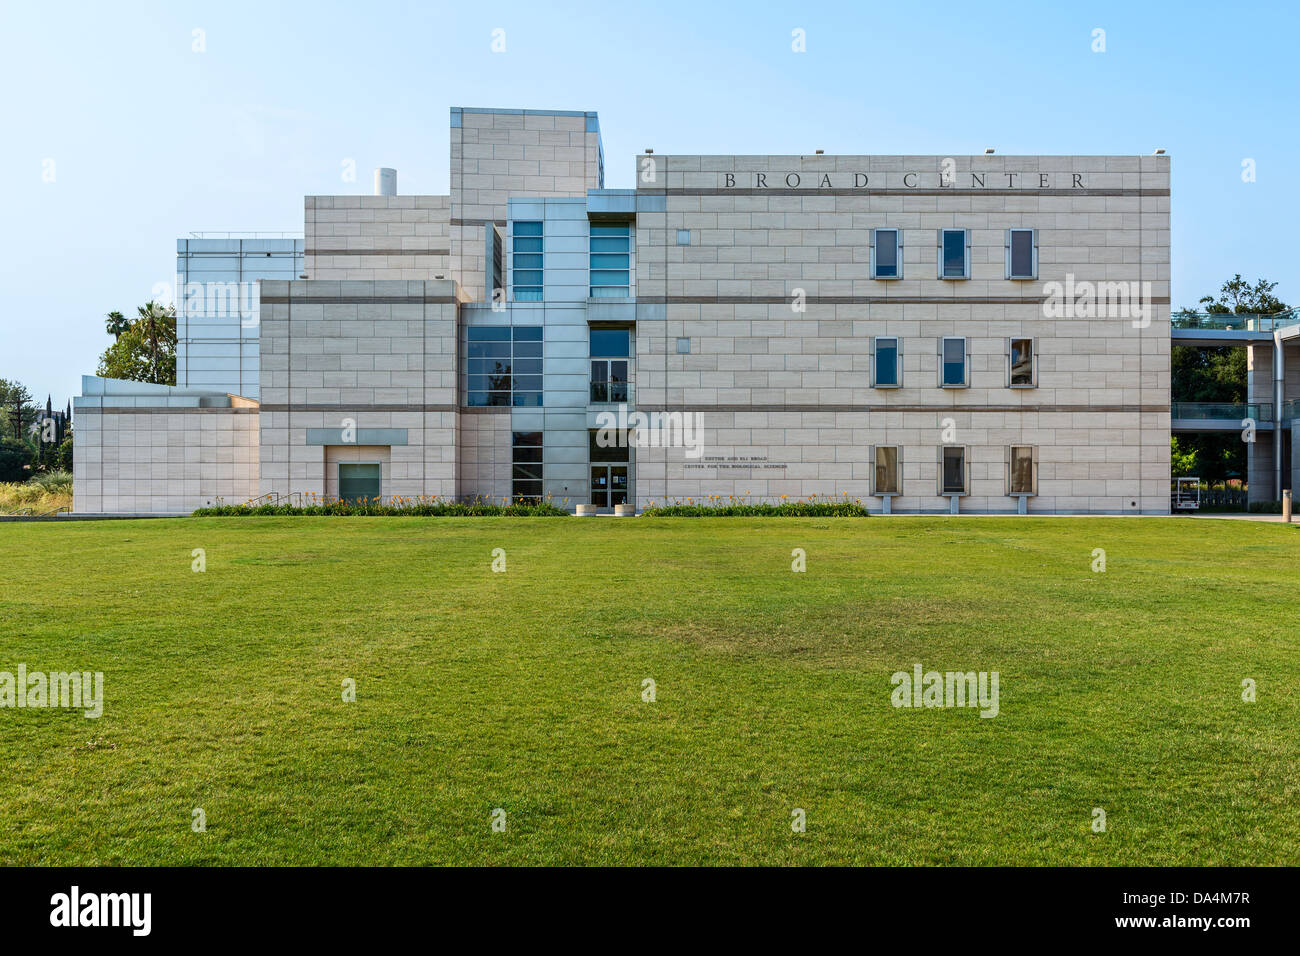 The Broad Center for Biological Sciences on the campus of Caltech, the California Institute of Technology. - Stock Image